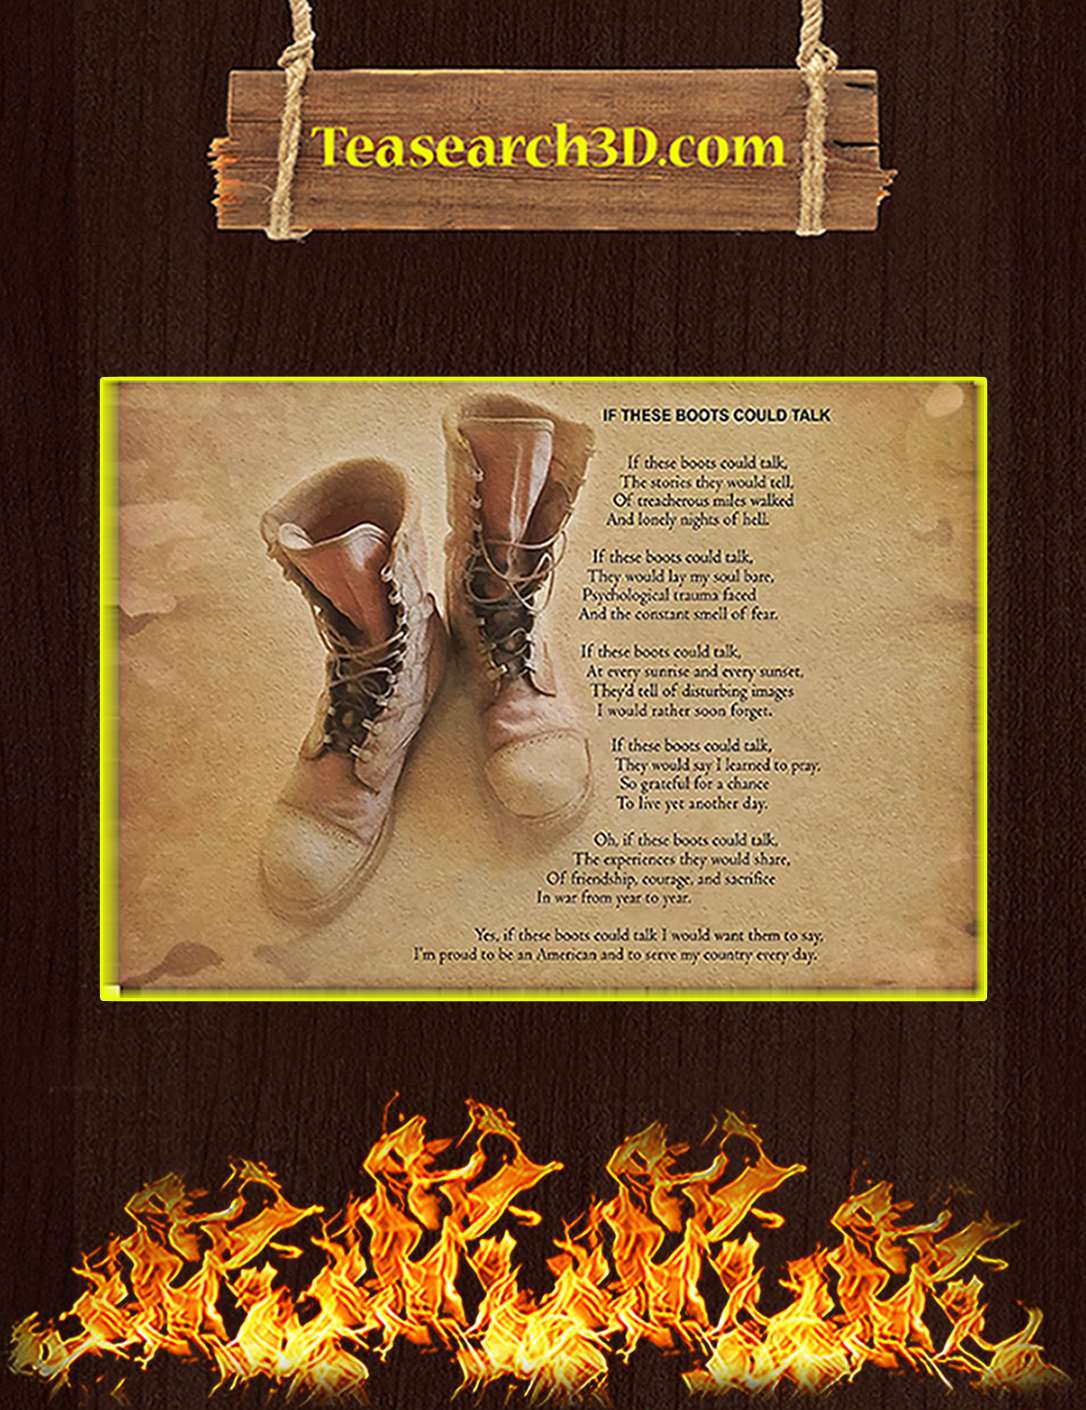 If these boots could talk poster A2